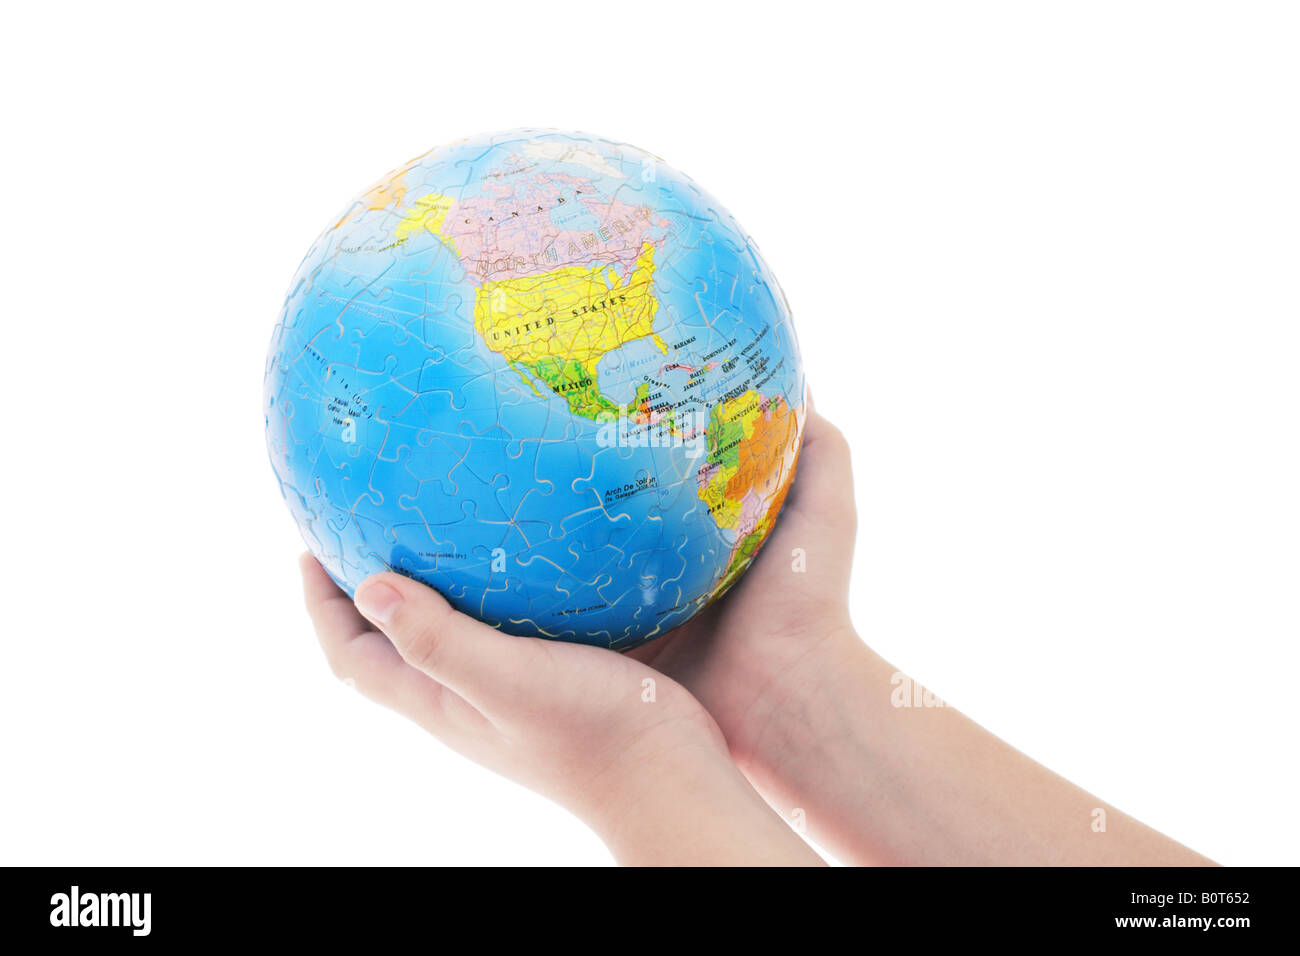 Young boy s hand holding completed globe jigsaw puzzle on white background - Stock Image